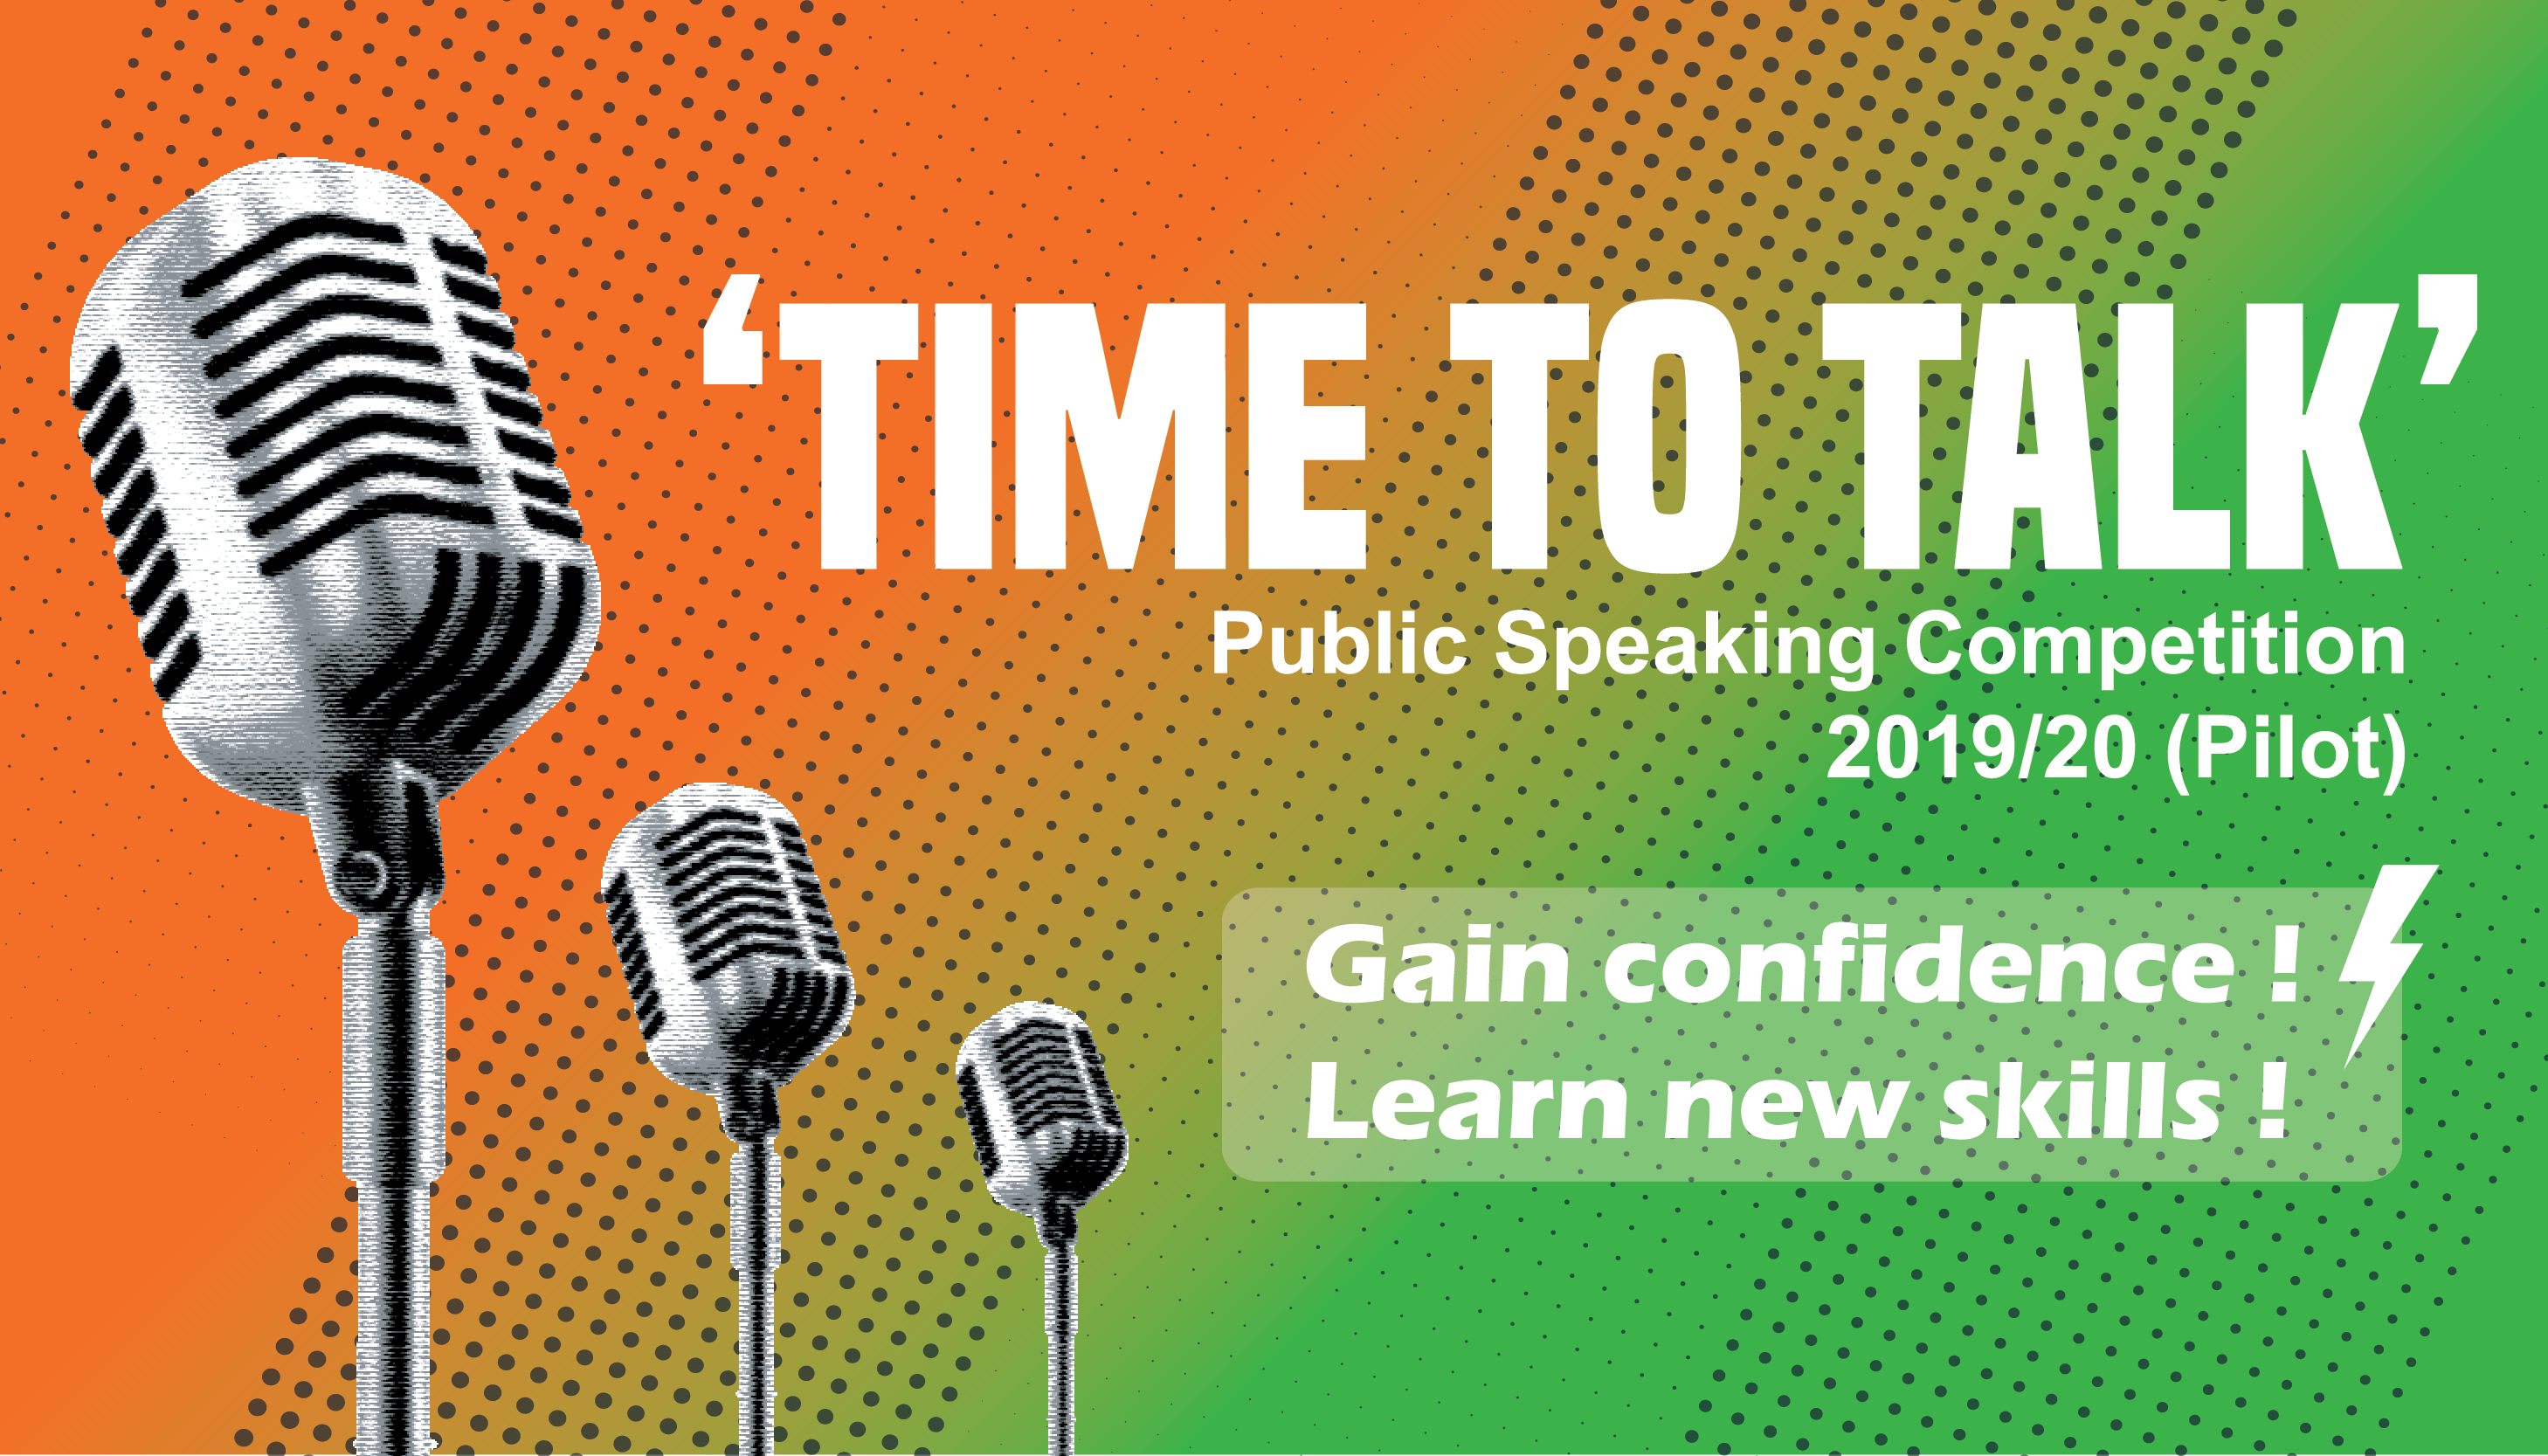 Public Speaking 'Time to Talk' (Pilot)